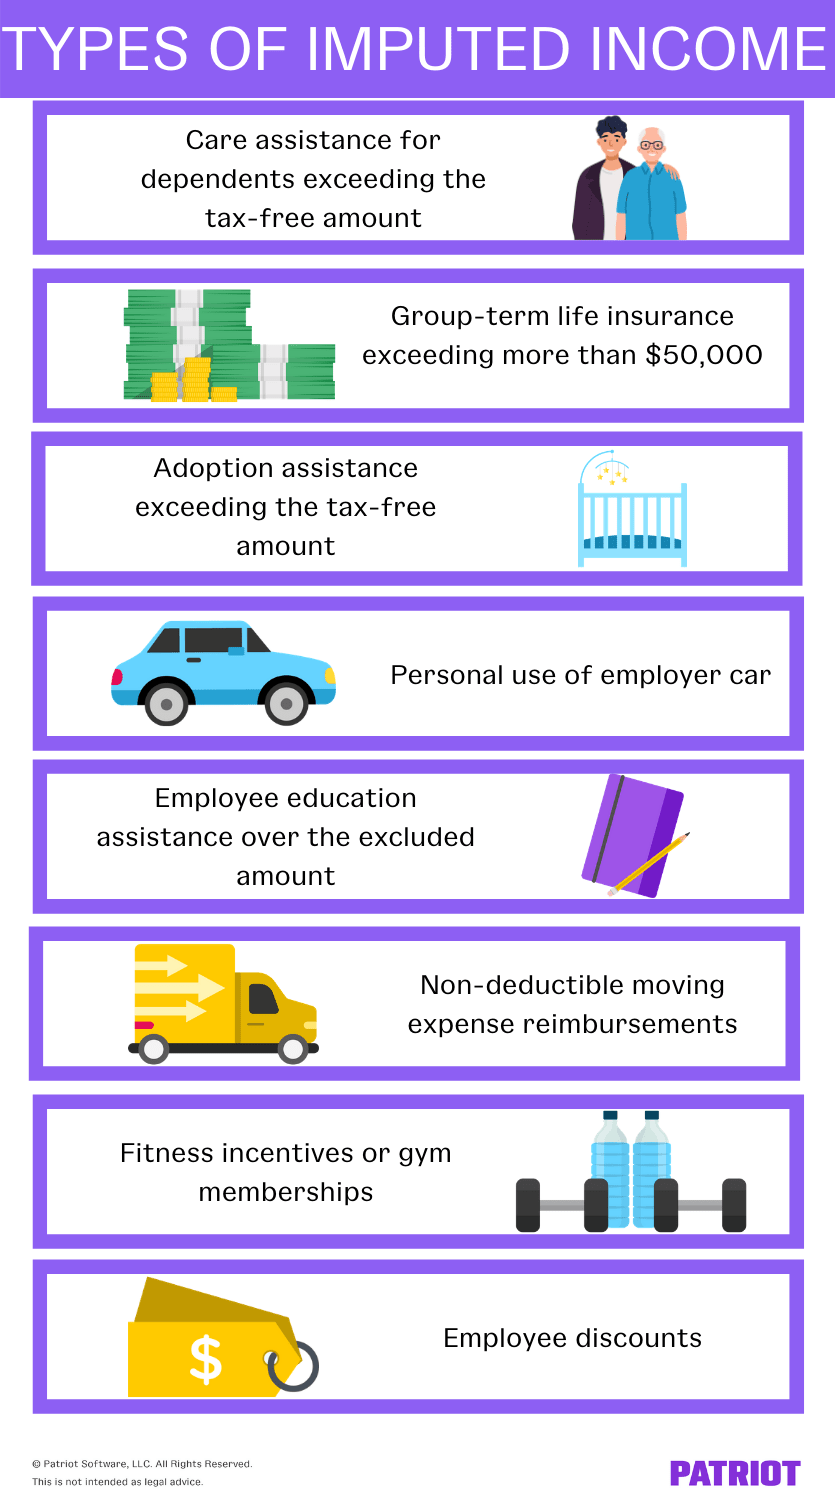 types of imputed income with illustrations for each